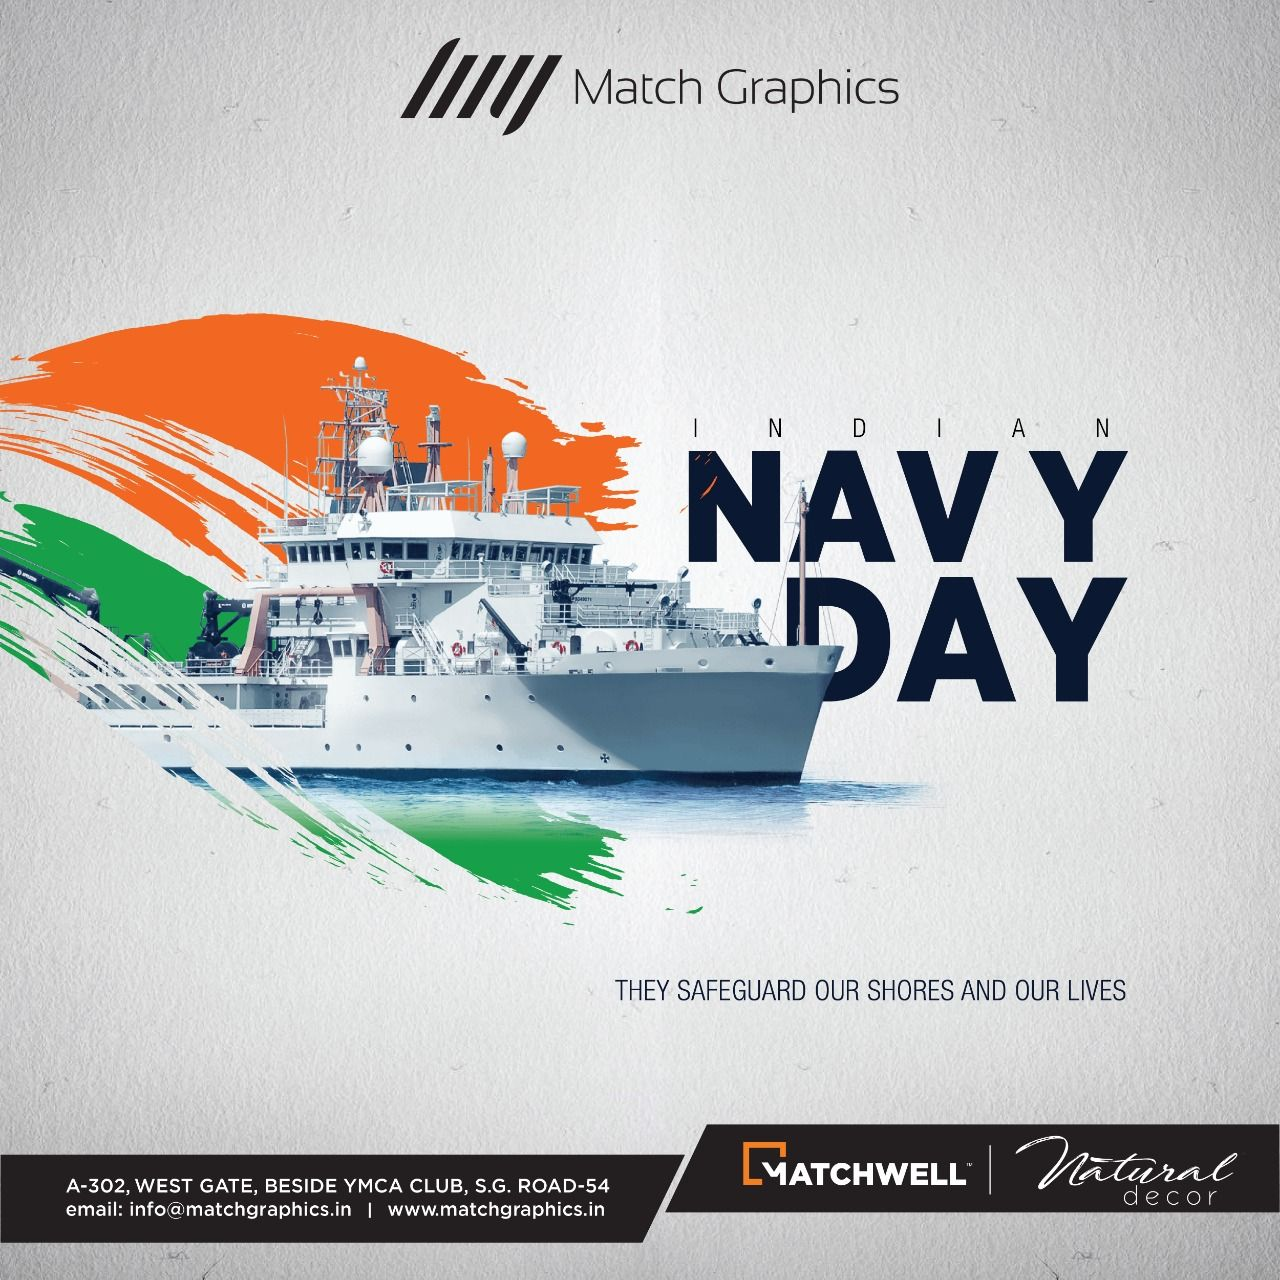 They Safeguard Our Shores And Our Lives Navy Day Of India Matchgraphics Matchwell Naturaldecor Navy Day Indian Navy Day Social Media Design Inspiration